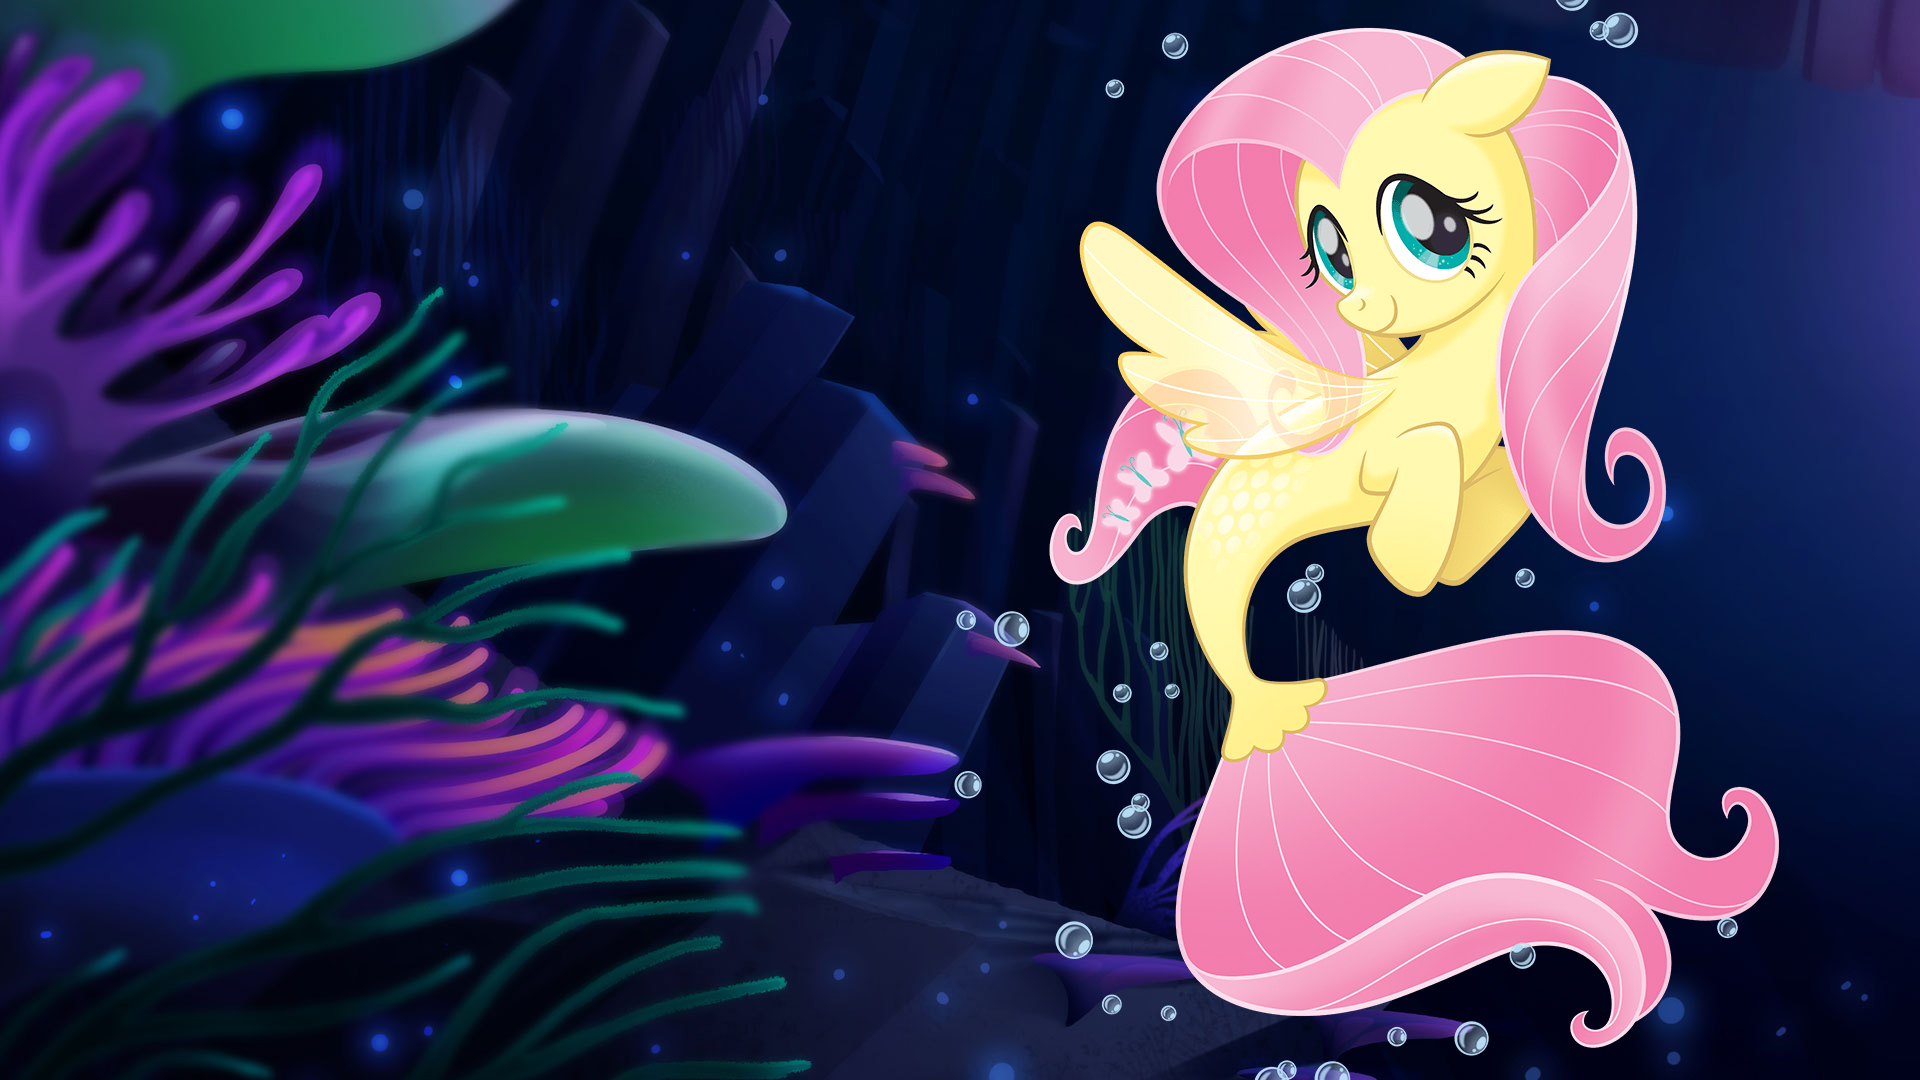 My Little Pony The Movie Wallpaper Mermaid Fluttershy